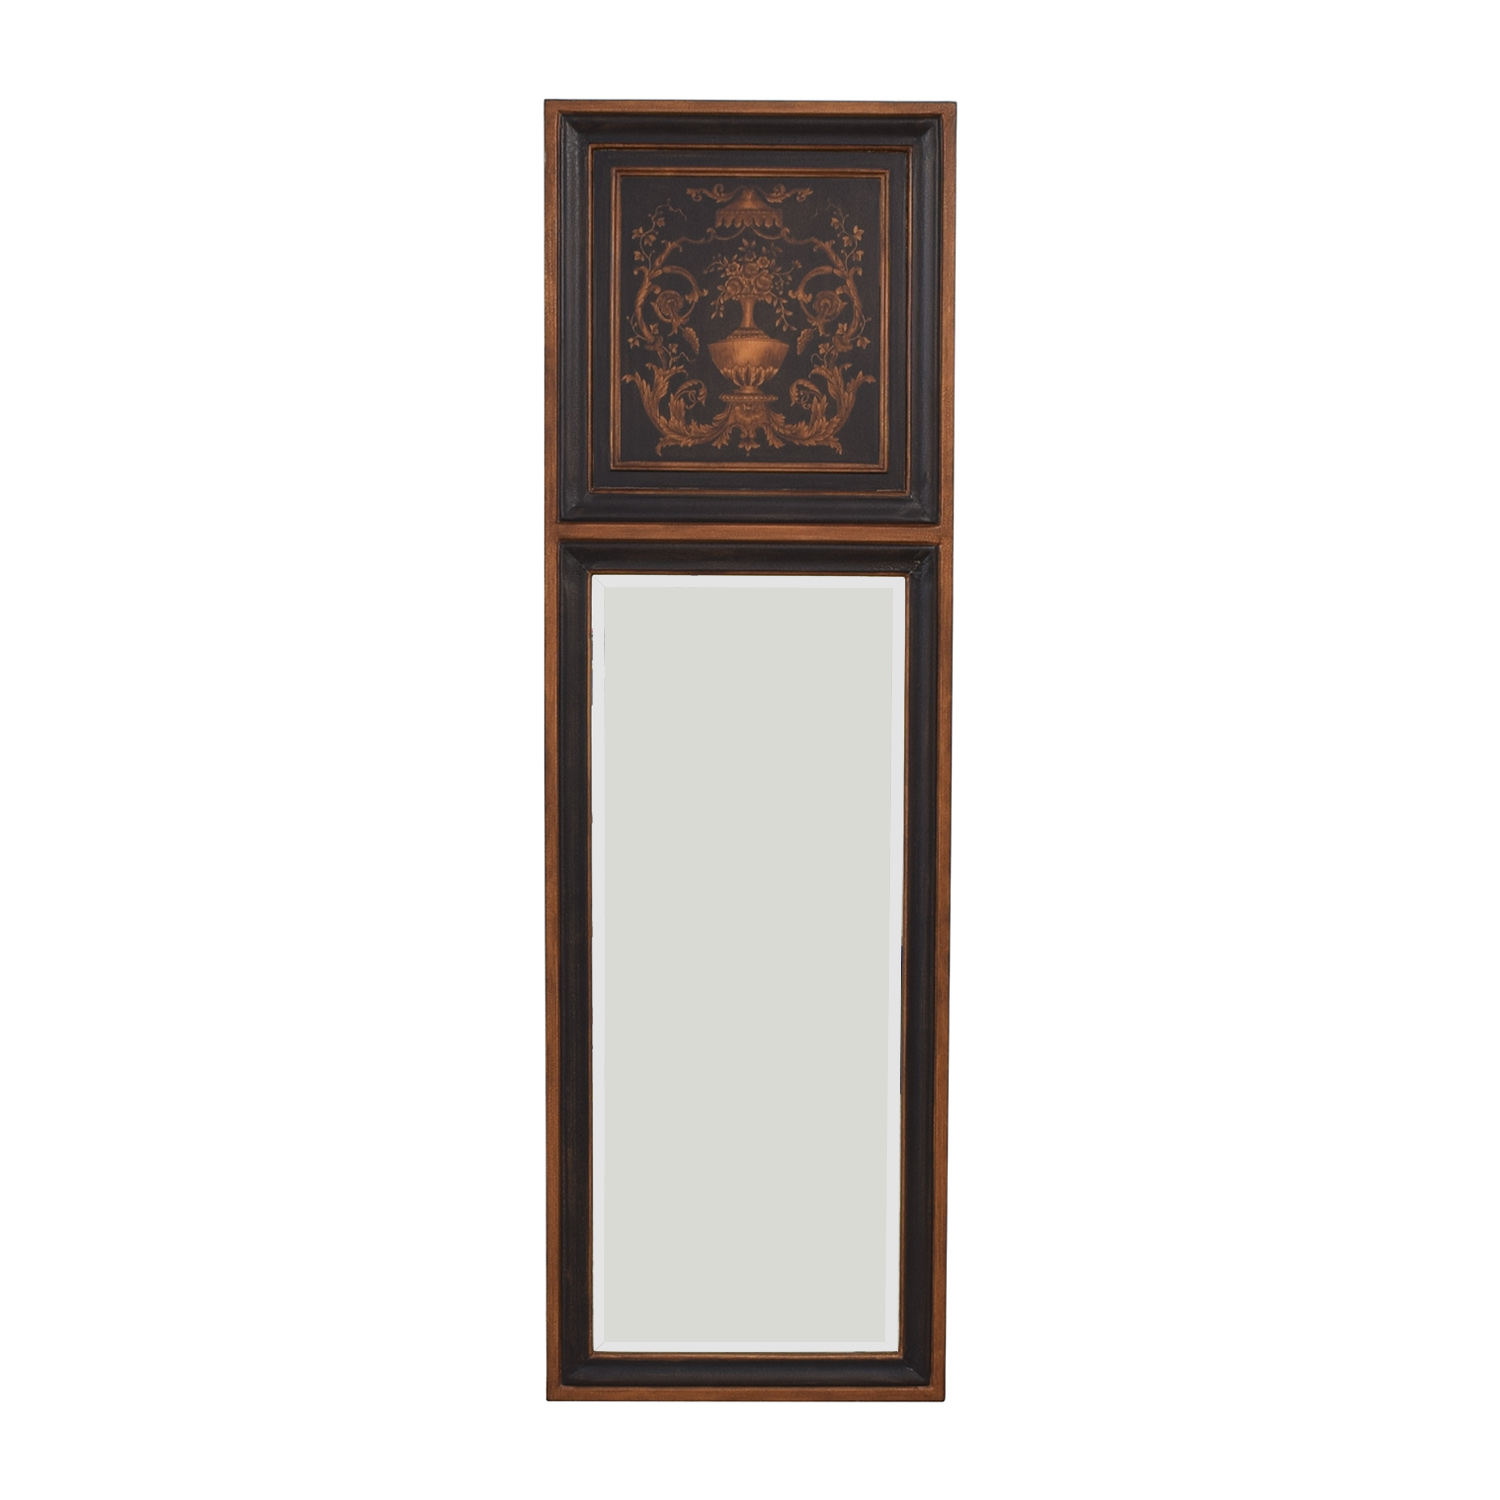 Ethan Allen Ethan Allen Mirror with Top Design second hand